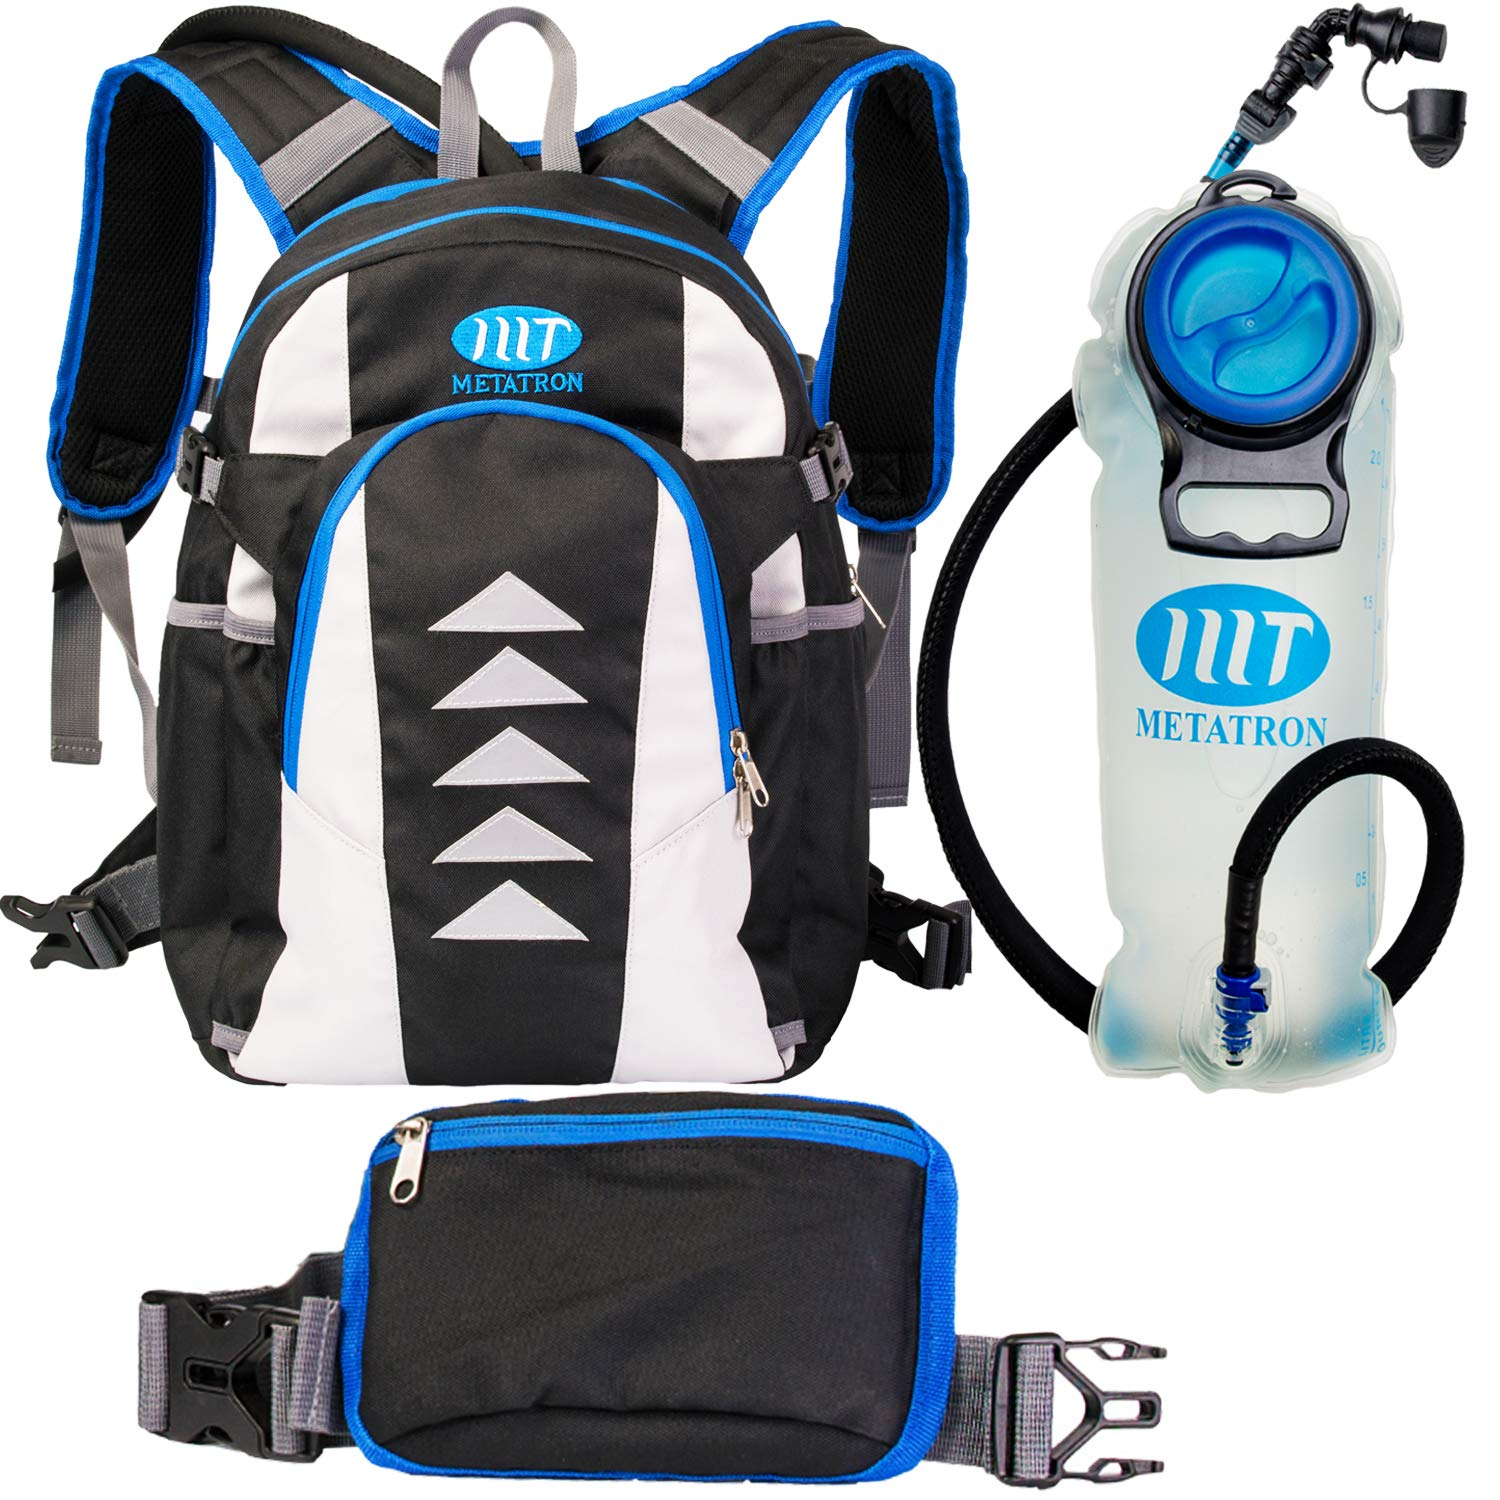 7a0c5a8133c8 Hydration Backpack with 2 Liters / 0.5 Gallons Leakproof Water ...